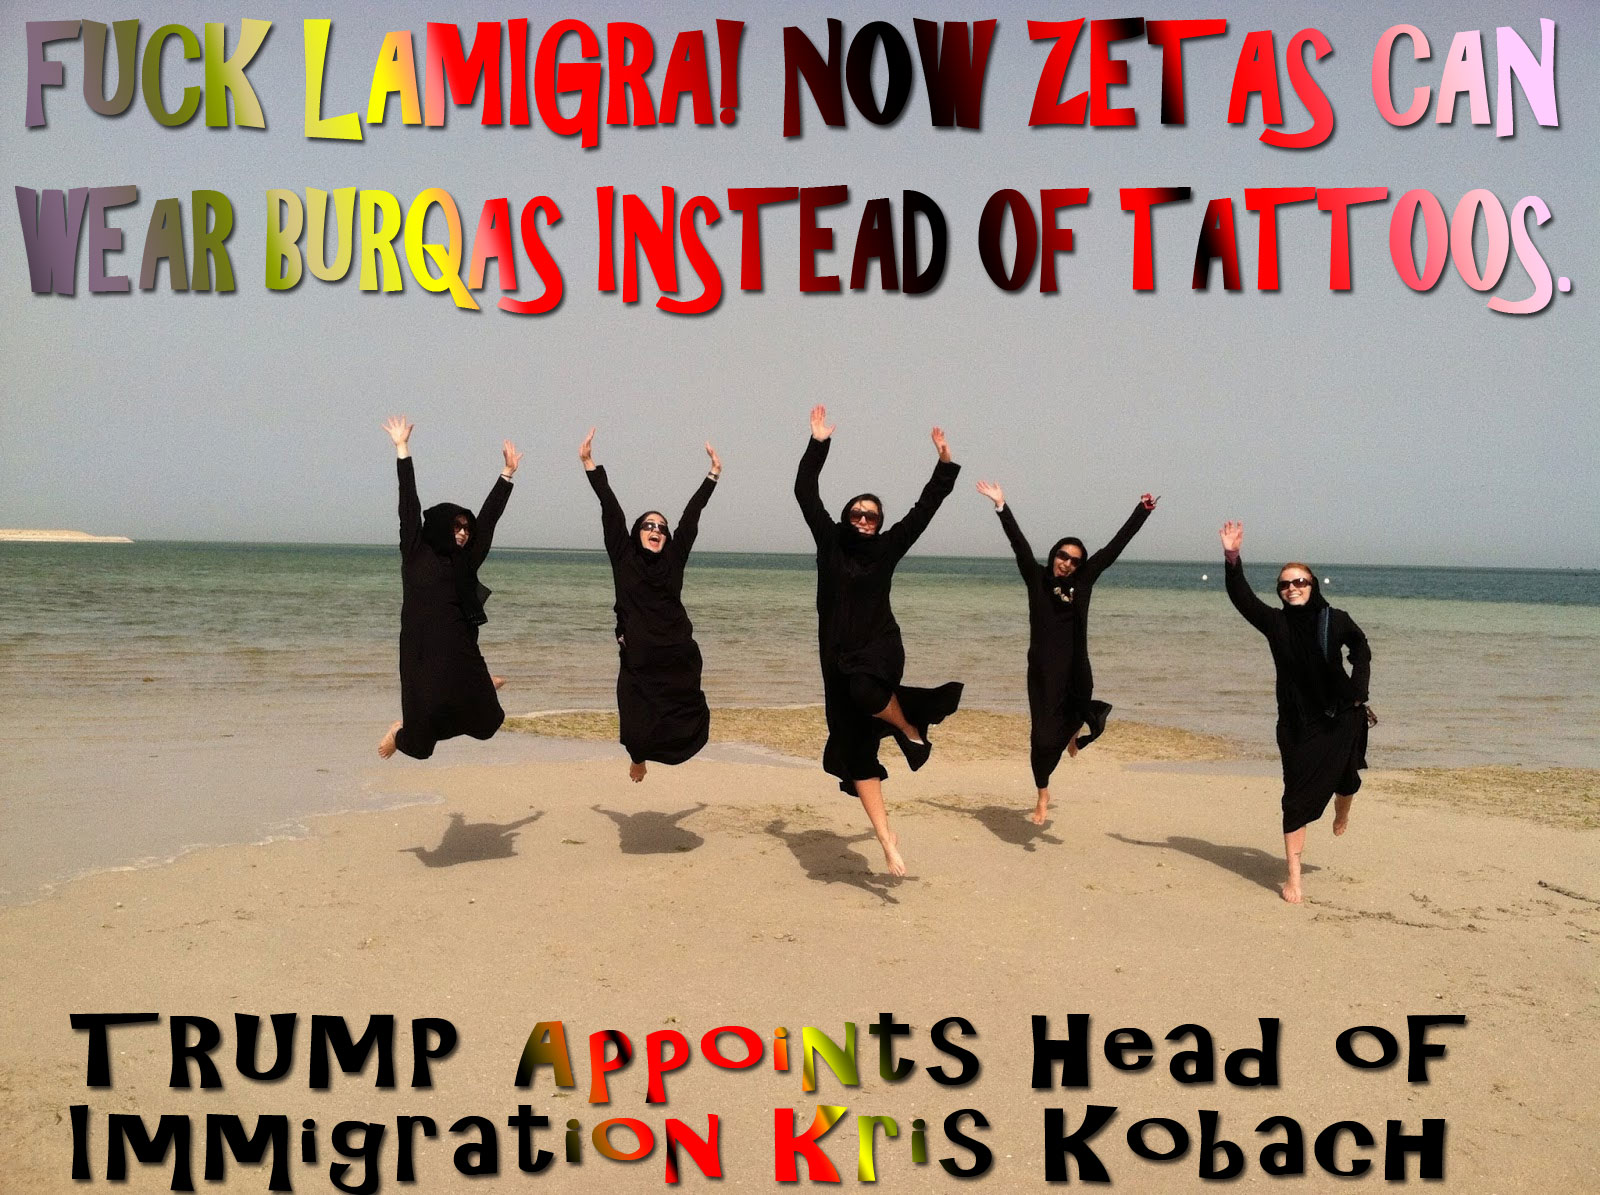 fuck-lamigra-now-zetas-can